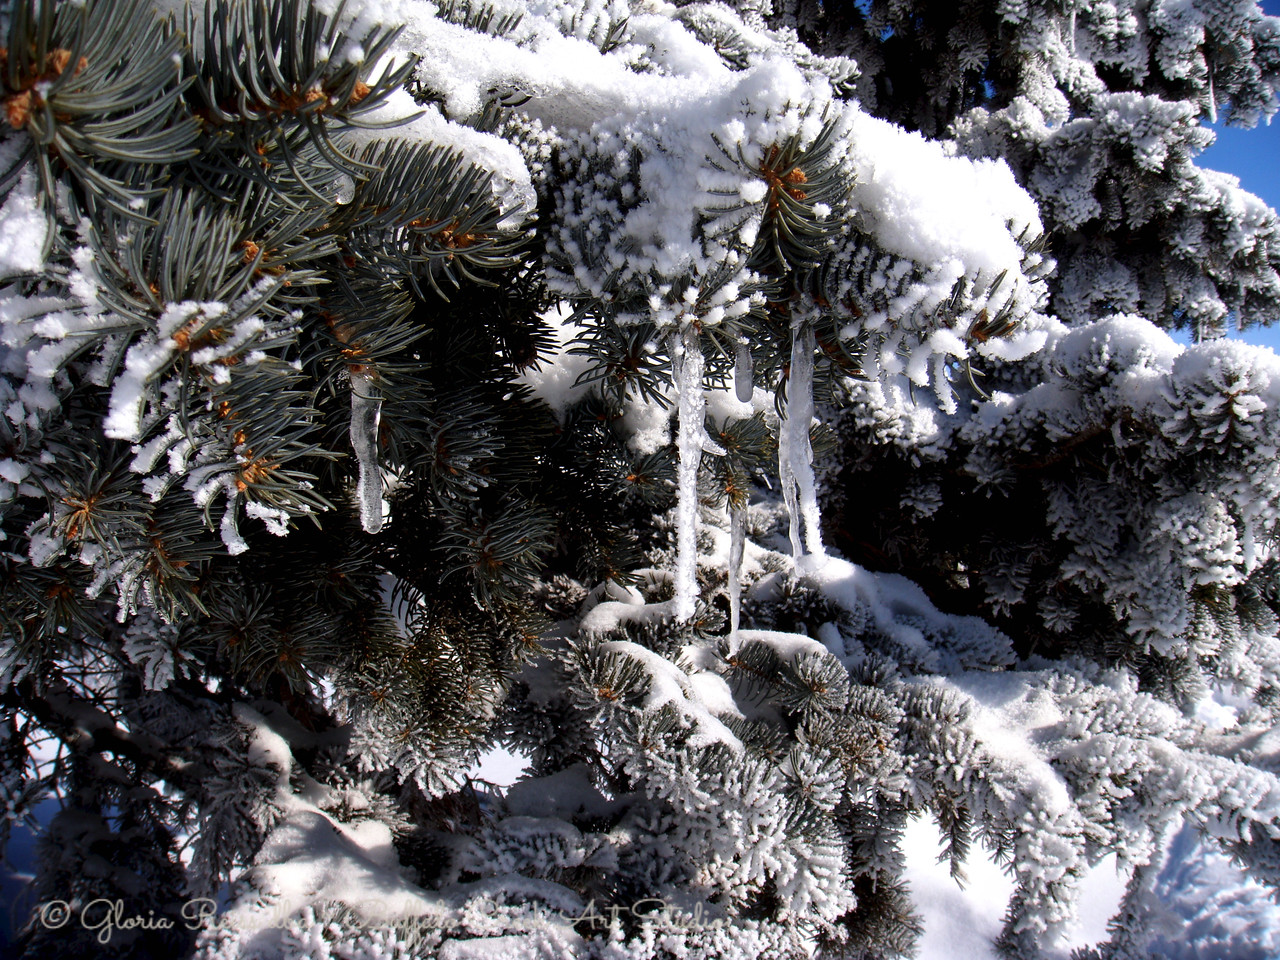 rain and snow make art out of the trees